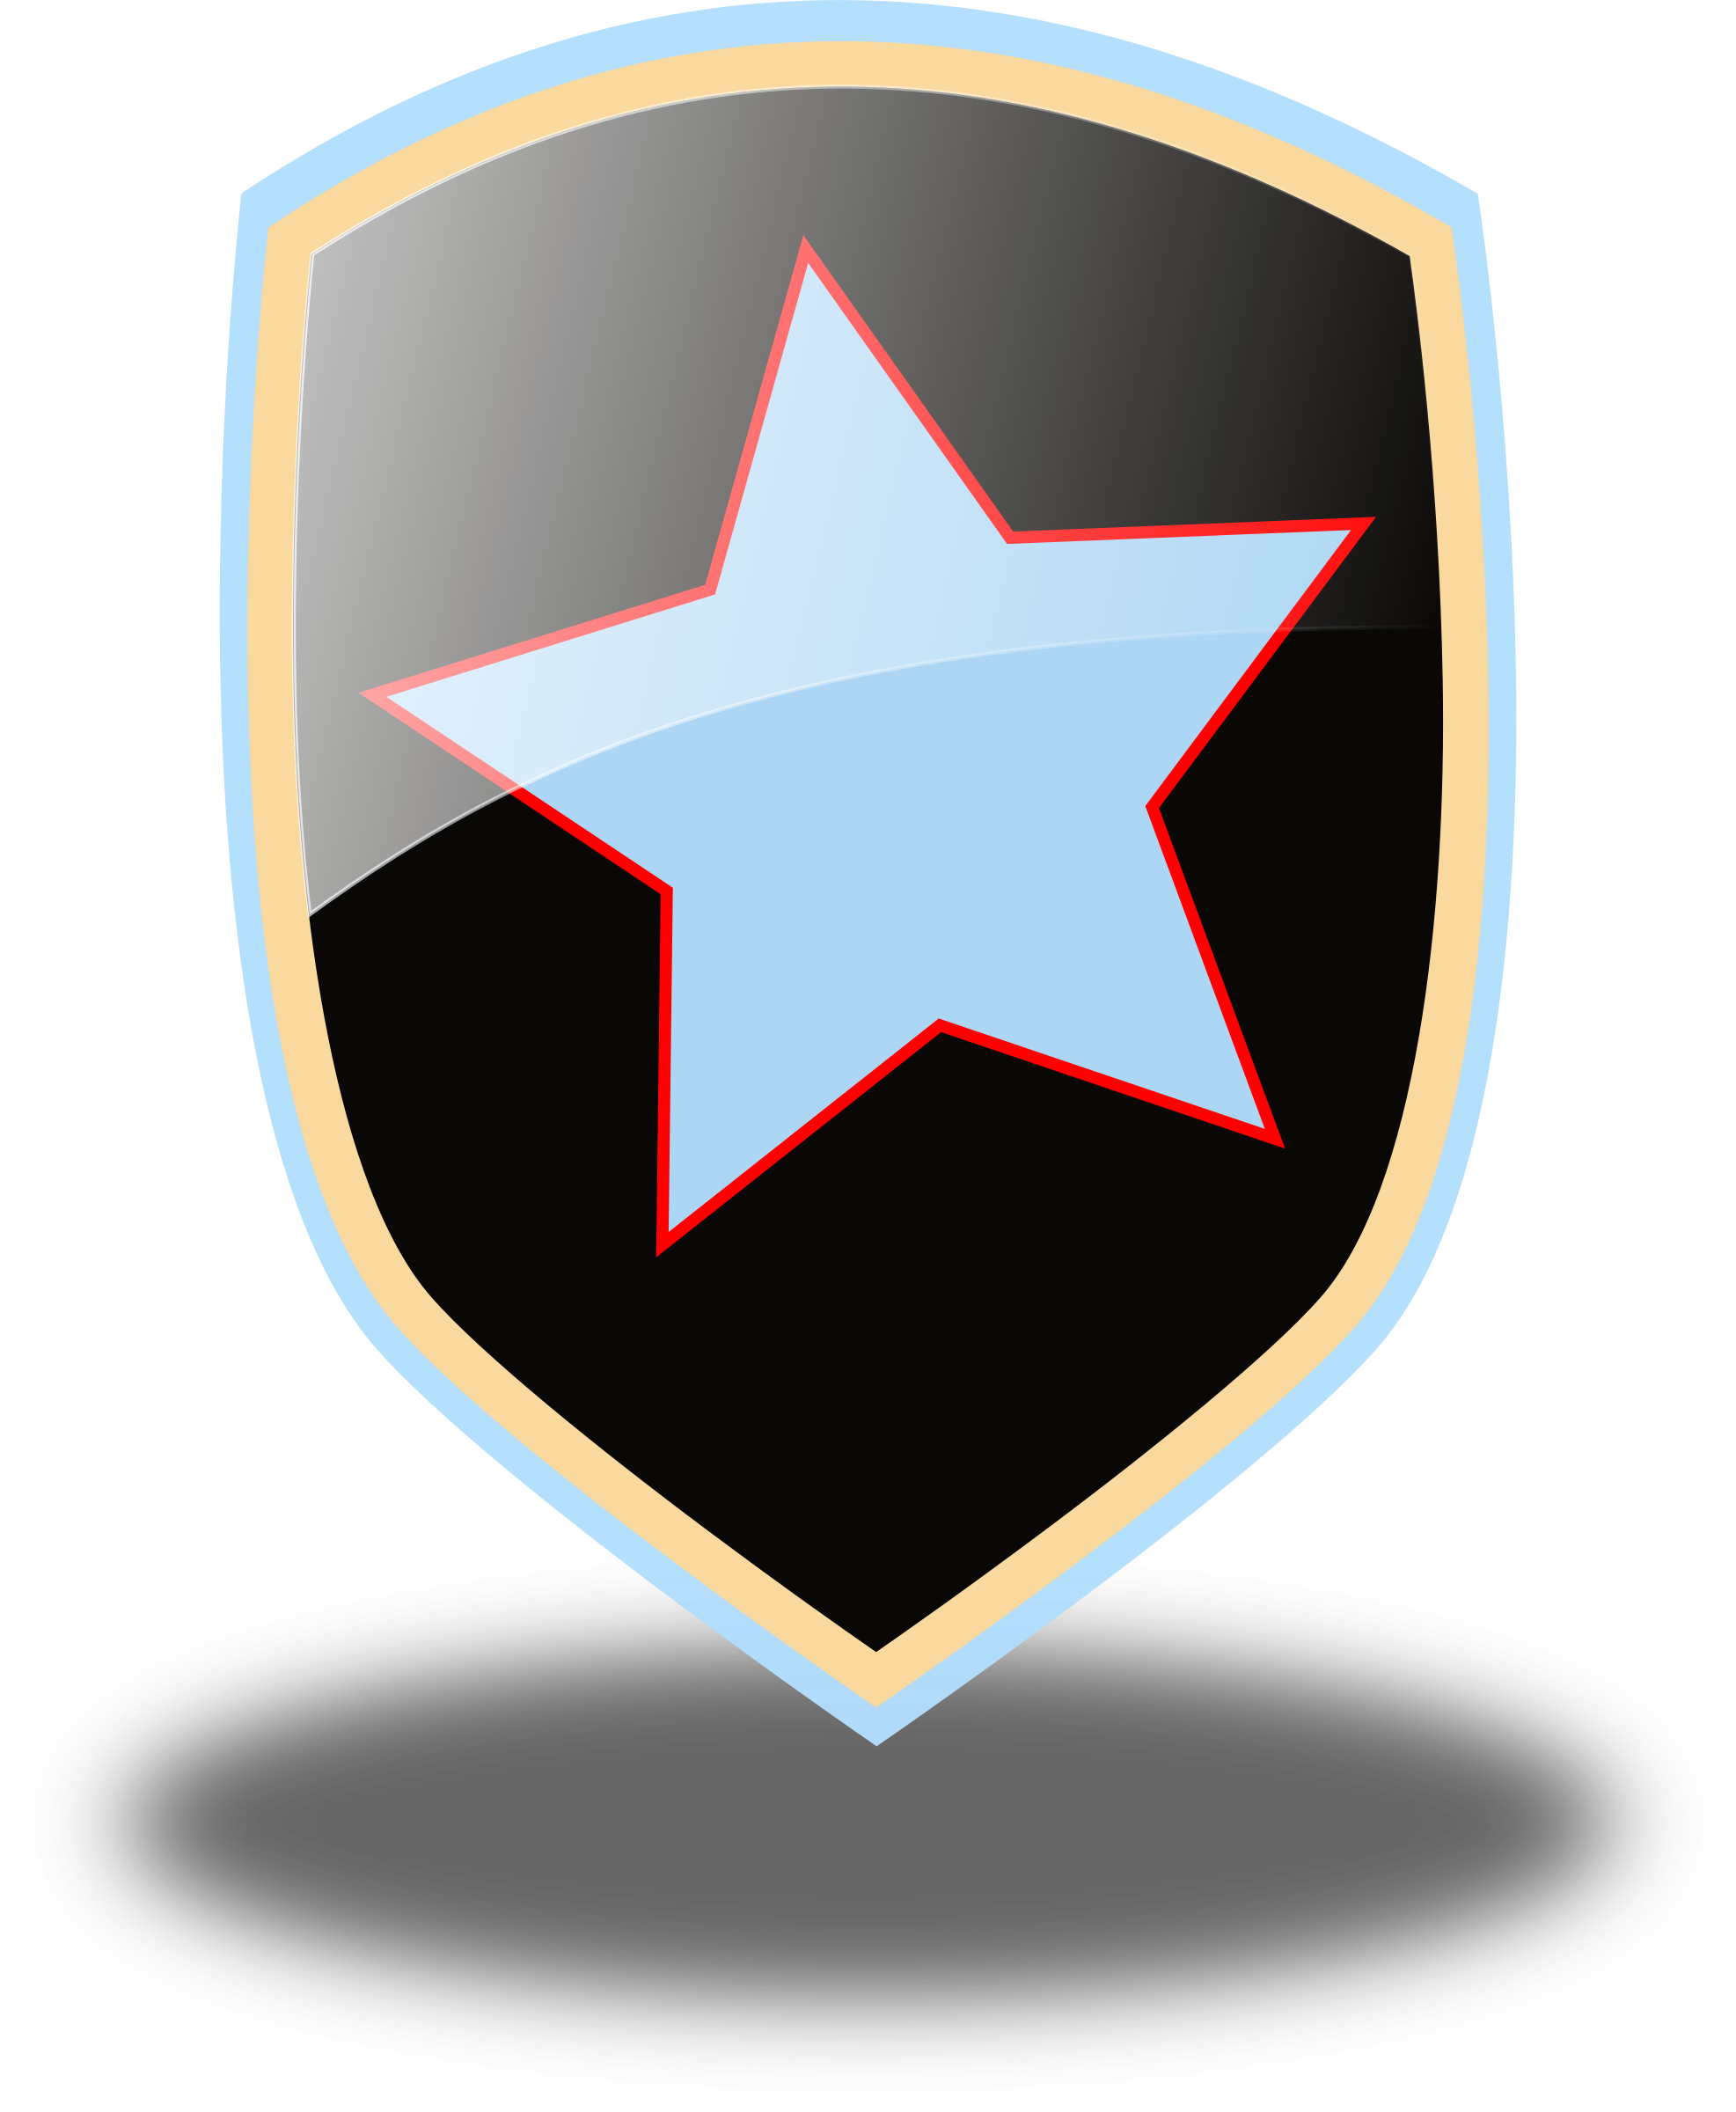 Sheild icon by Ramchand